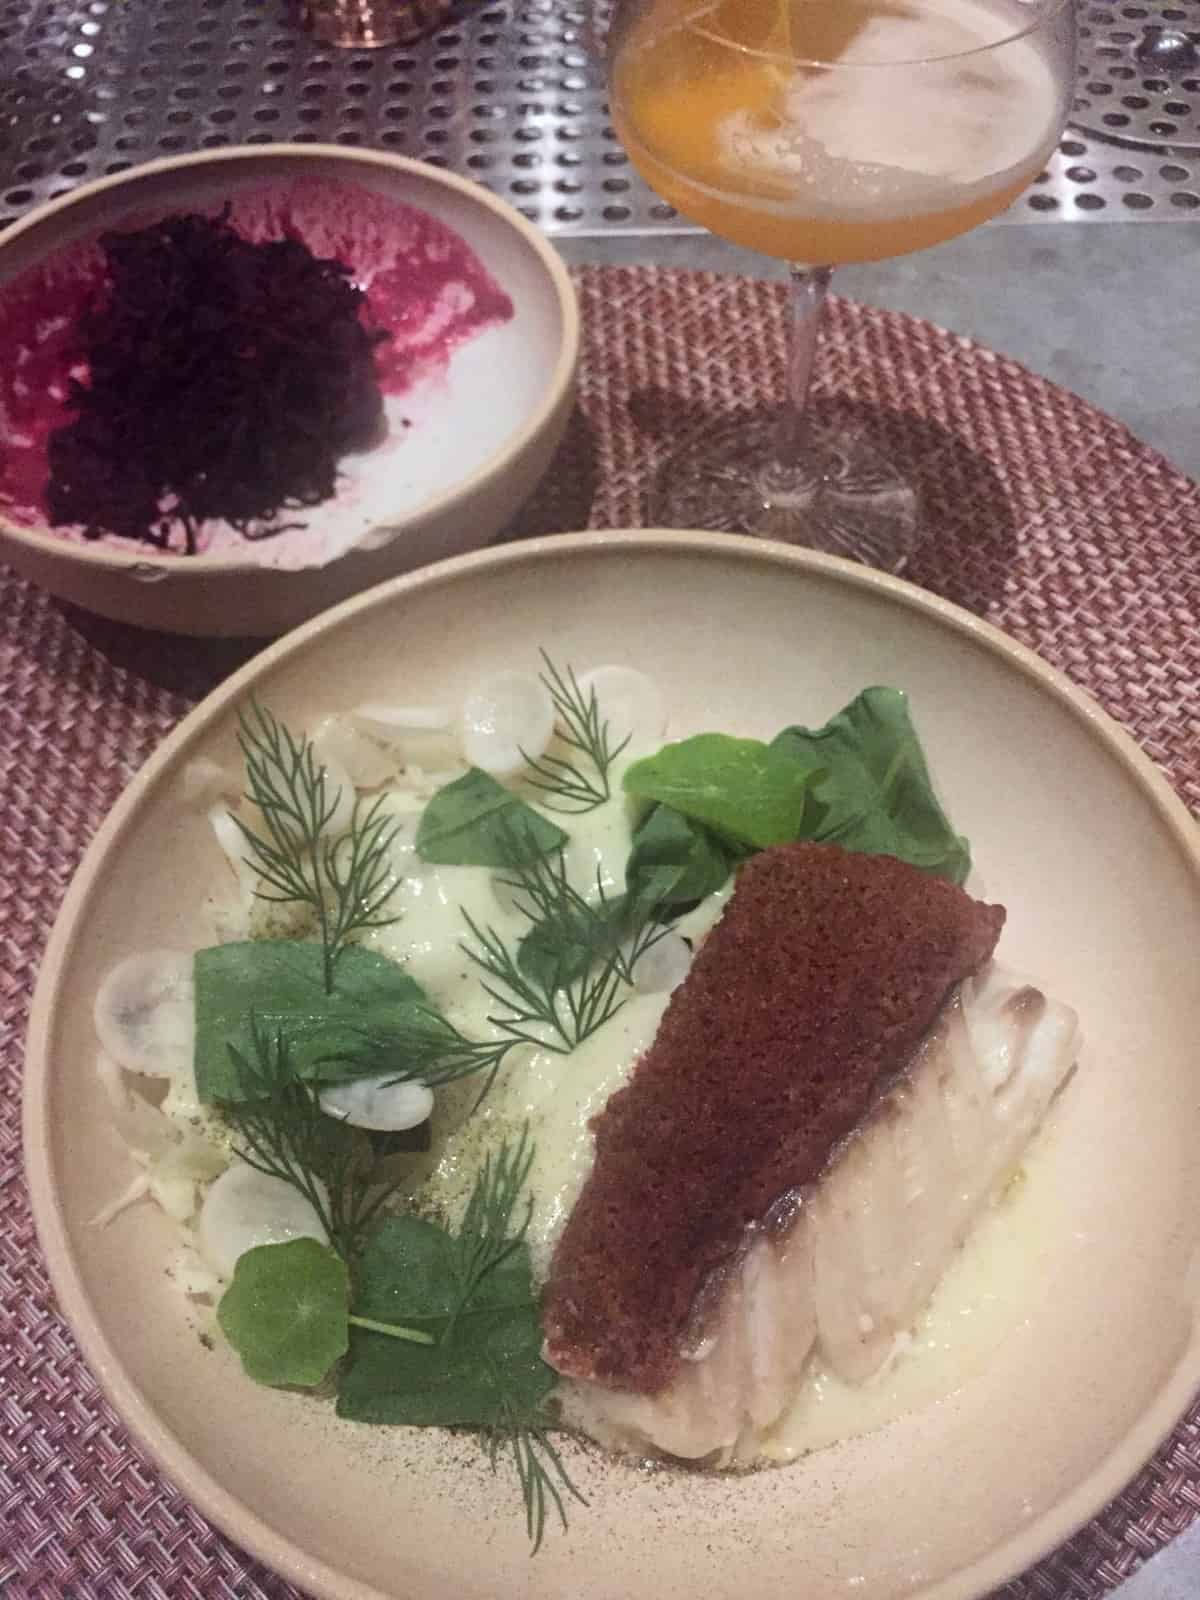 Piece of fish with greens and a bowl of beets and a cocktail in the background